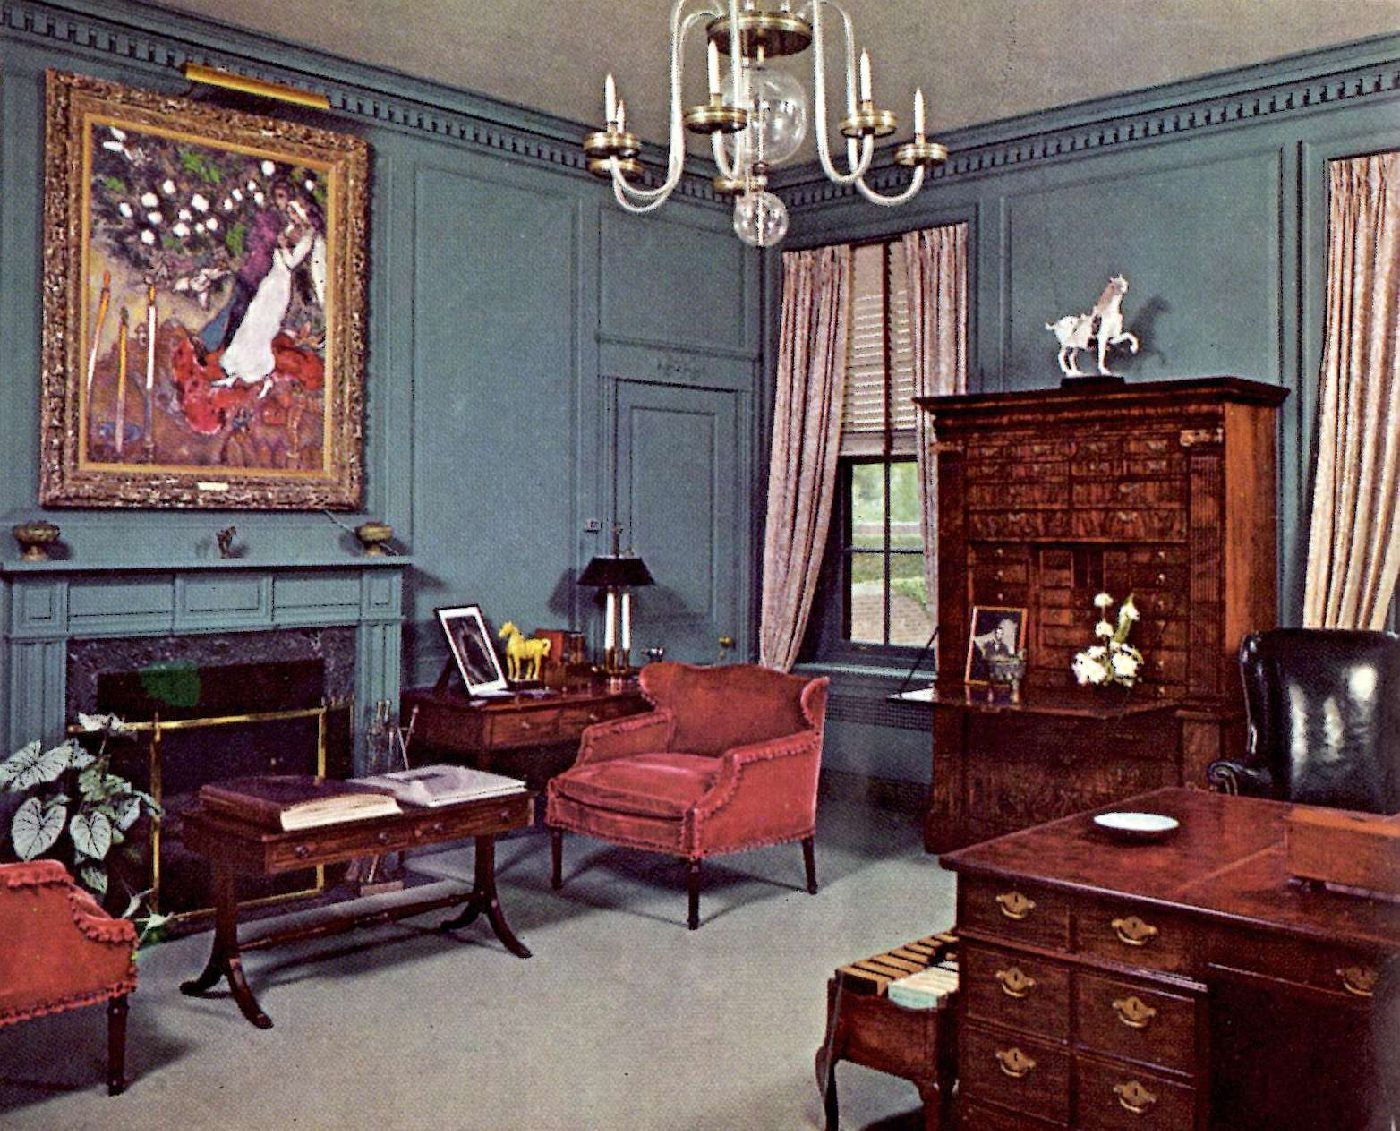 Office of DeWitt Wallace, editor of Reader's Digest